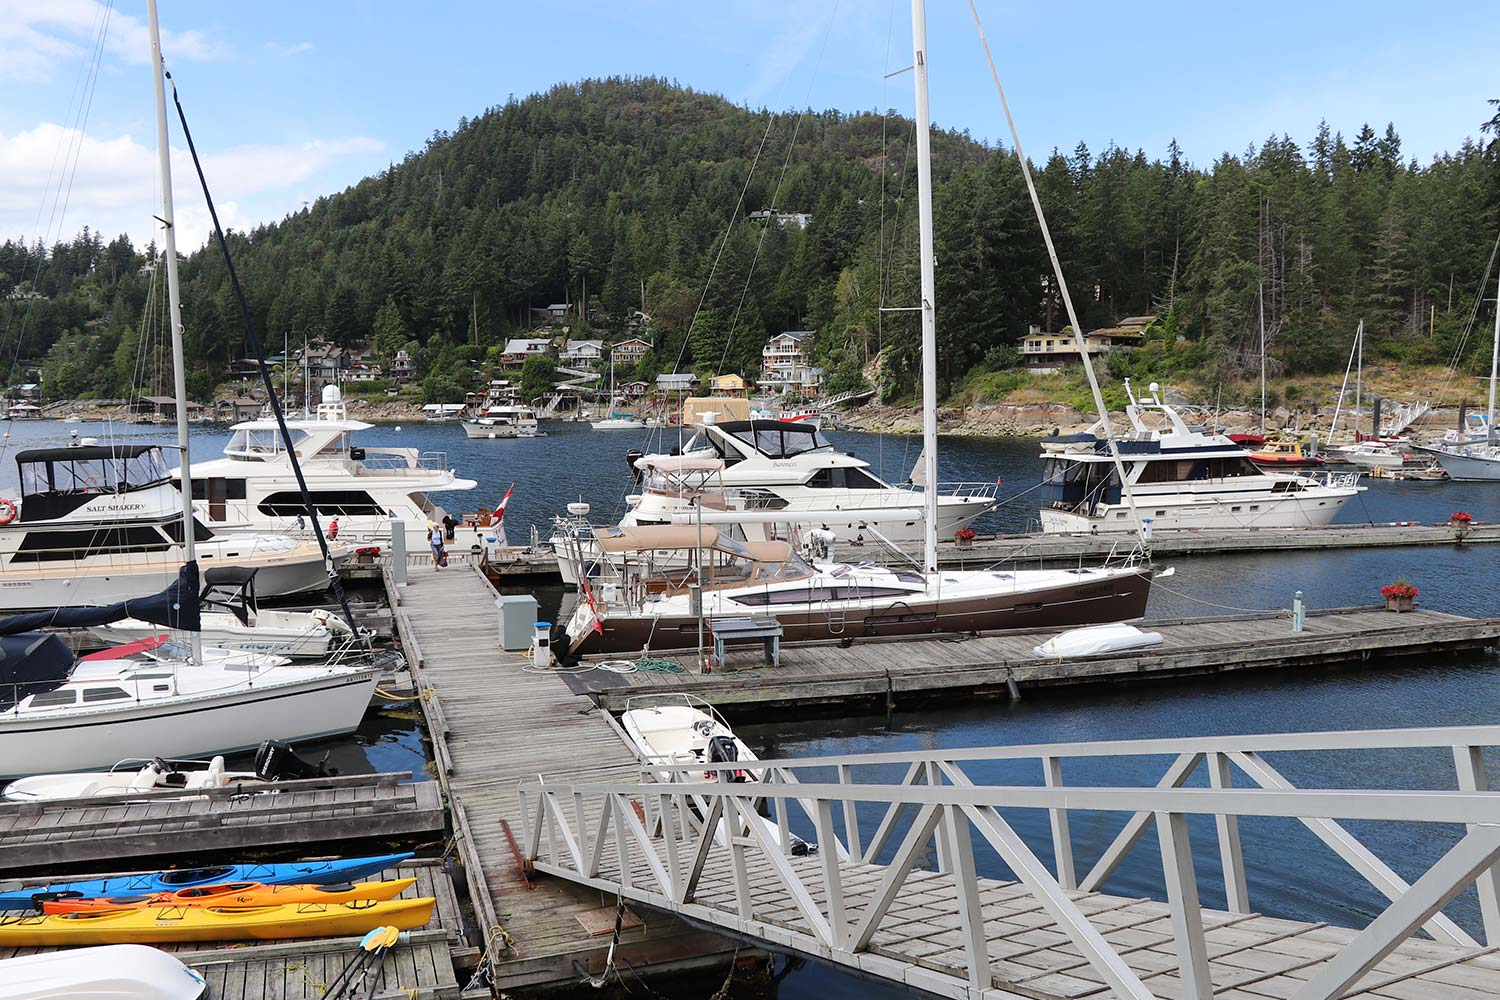 John Henry's Moorage on Garden Bay, Sunshine Coast filled with boats of different sizes. Moorage is available year-round.